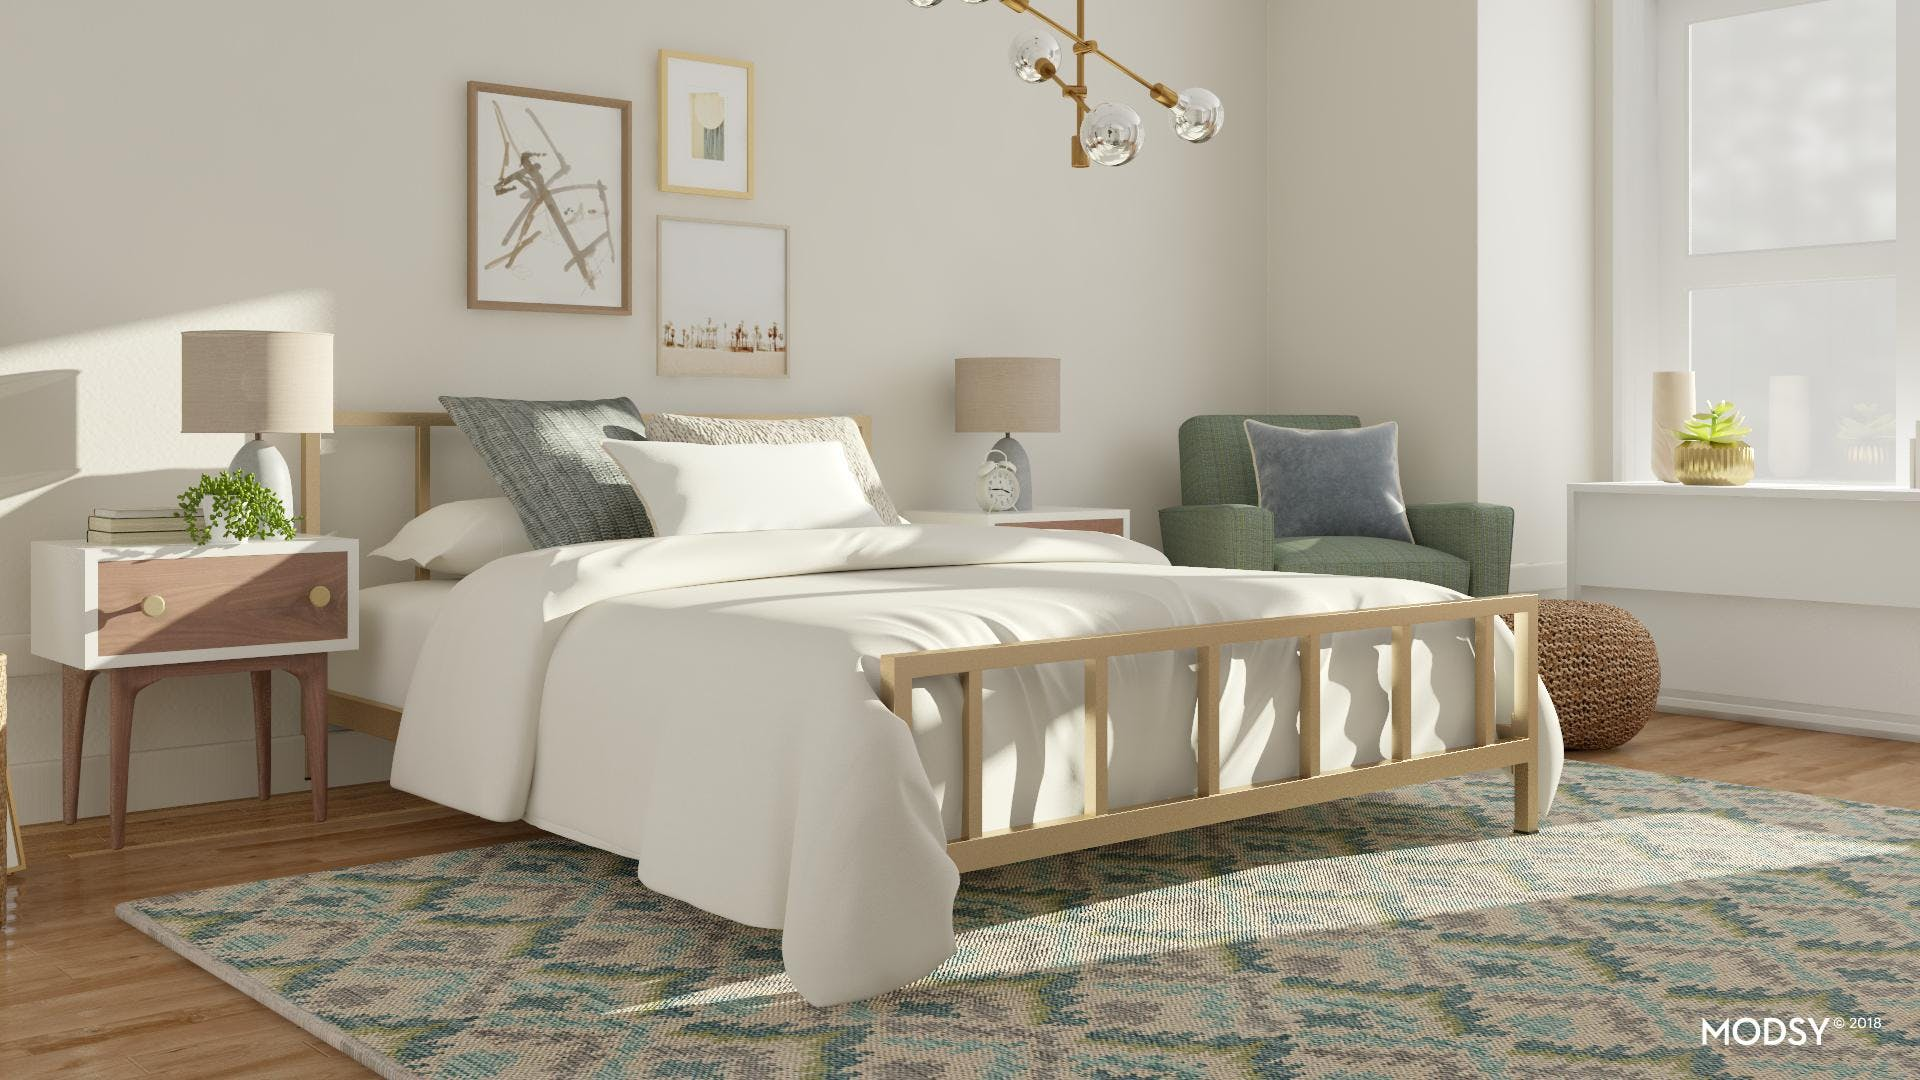 Mod Bedroom With A Glam Twist